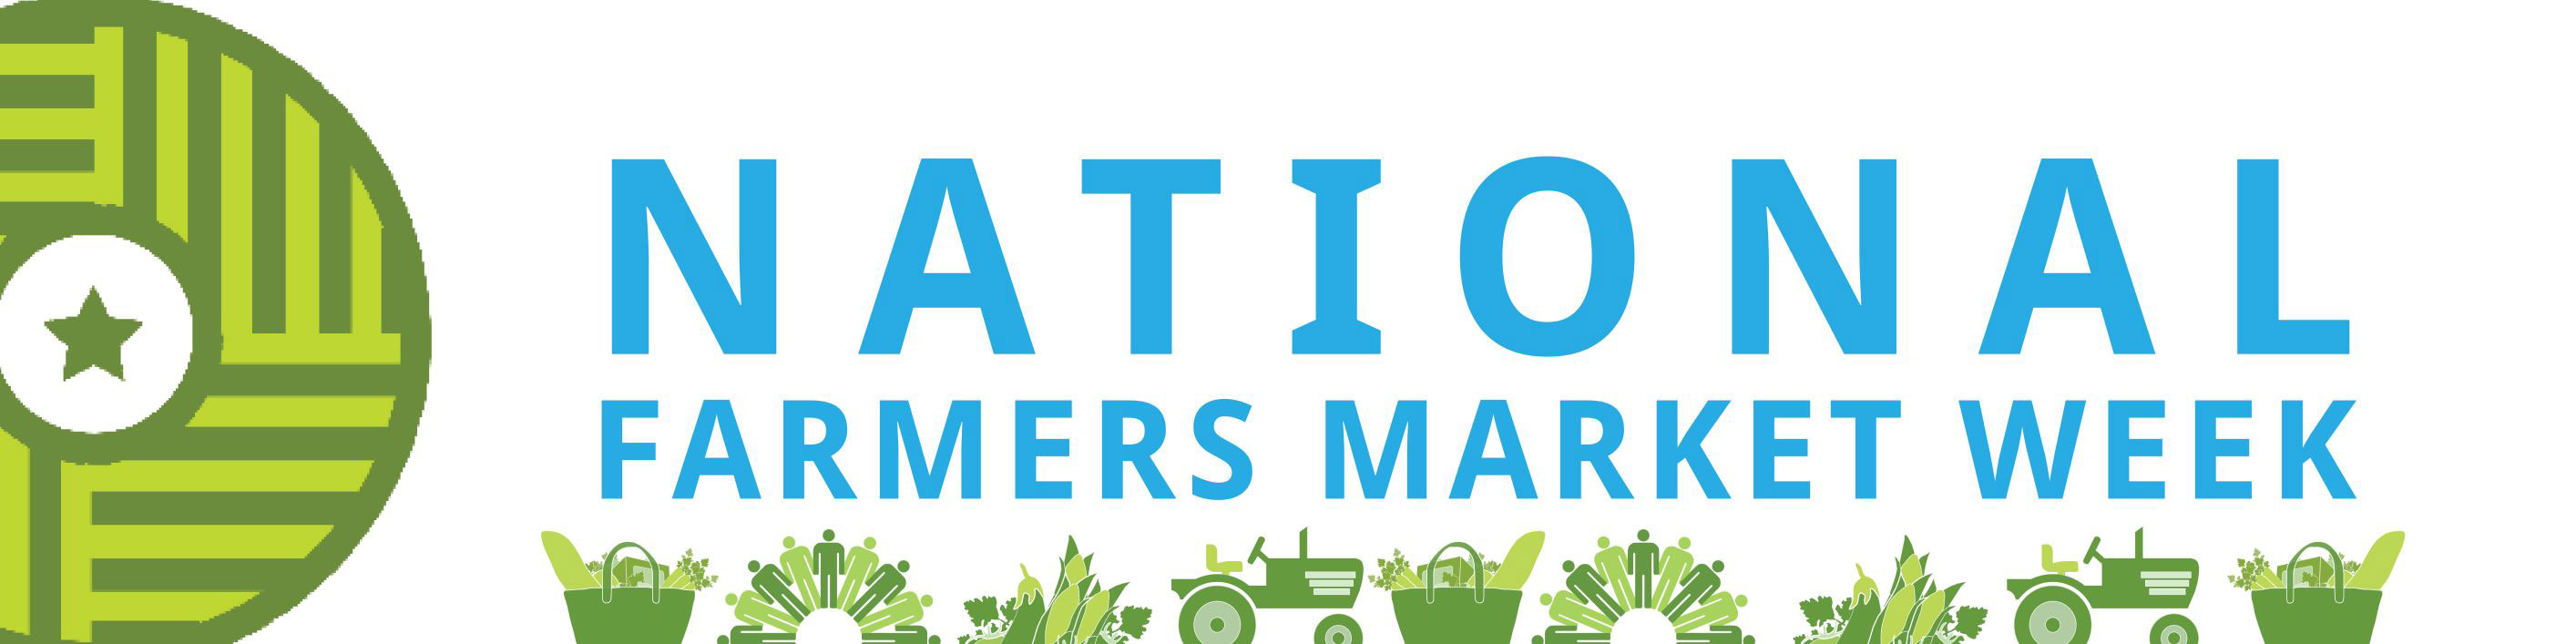 https://farmersmarketcoalition.org/national-farmers-market-week/